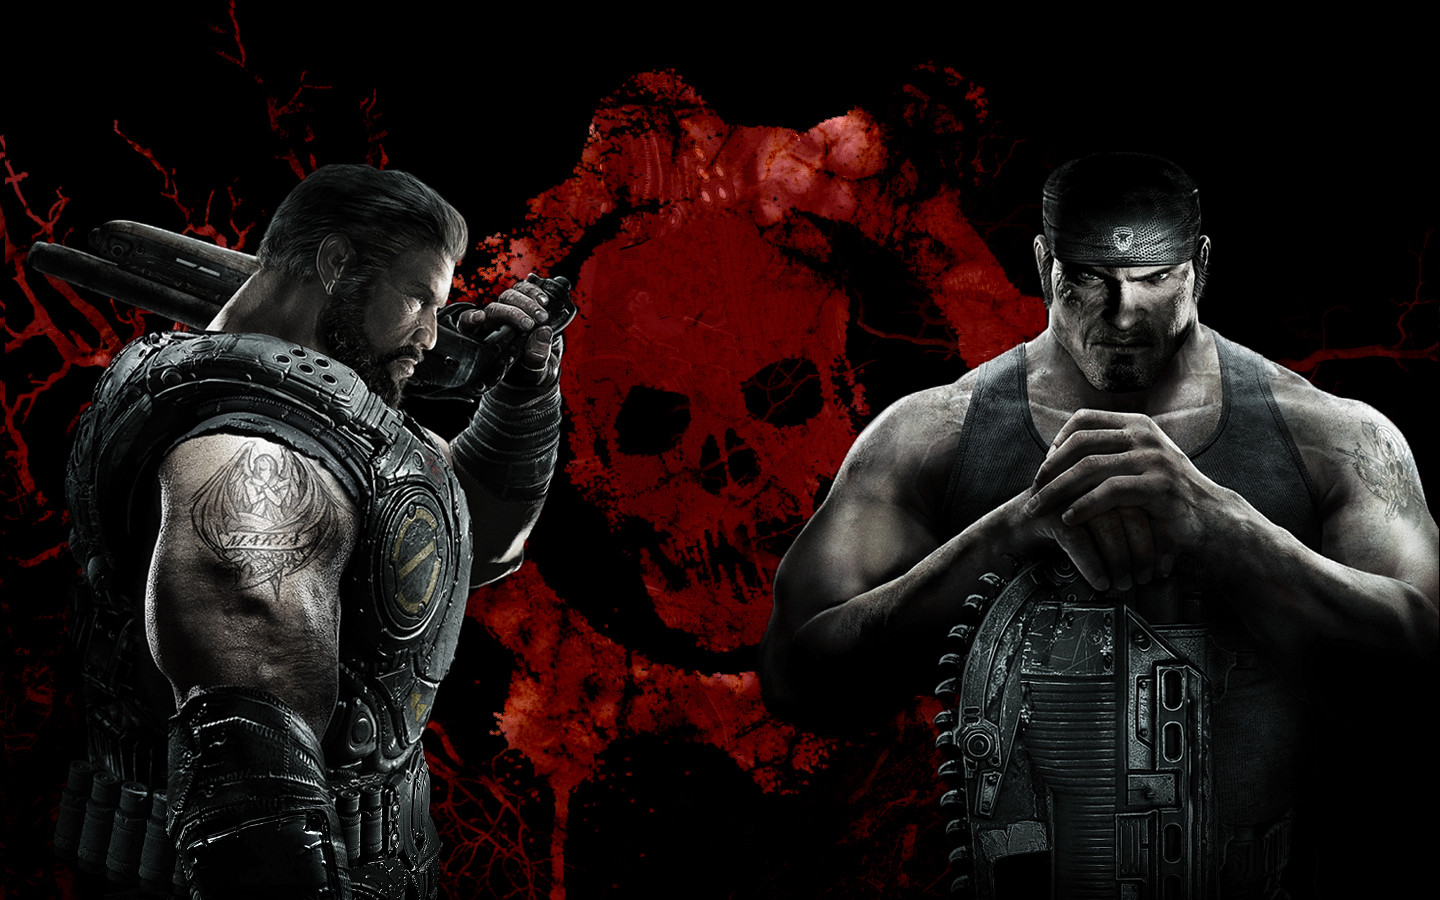 Gears Of War 3 Wallpapers: Cool Wallpaper Image